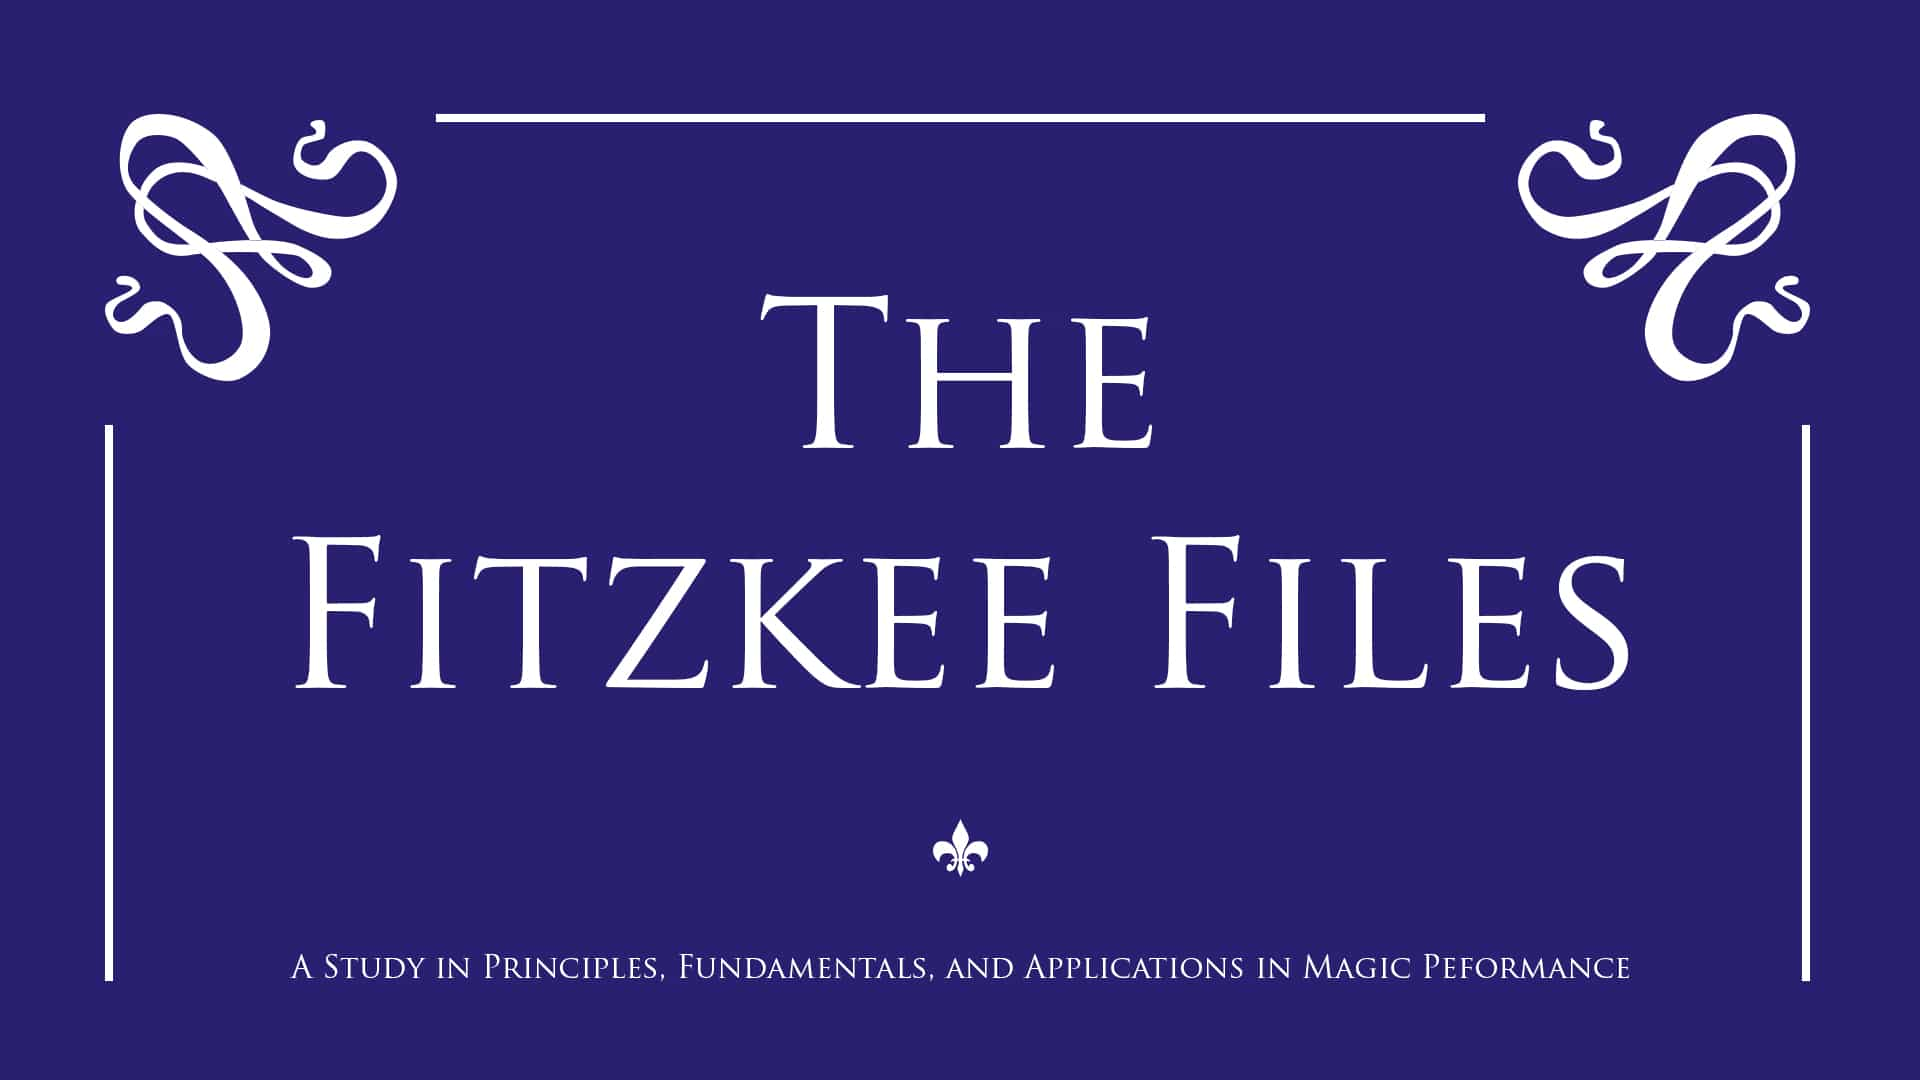 The Fitzkee Files